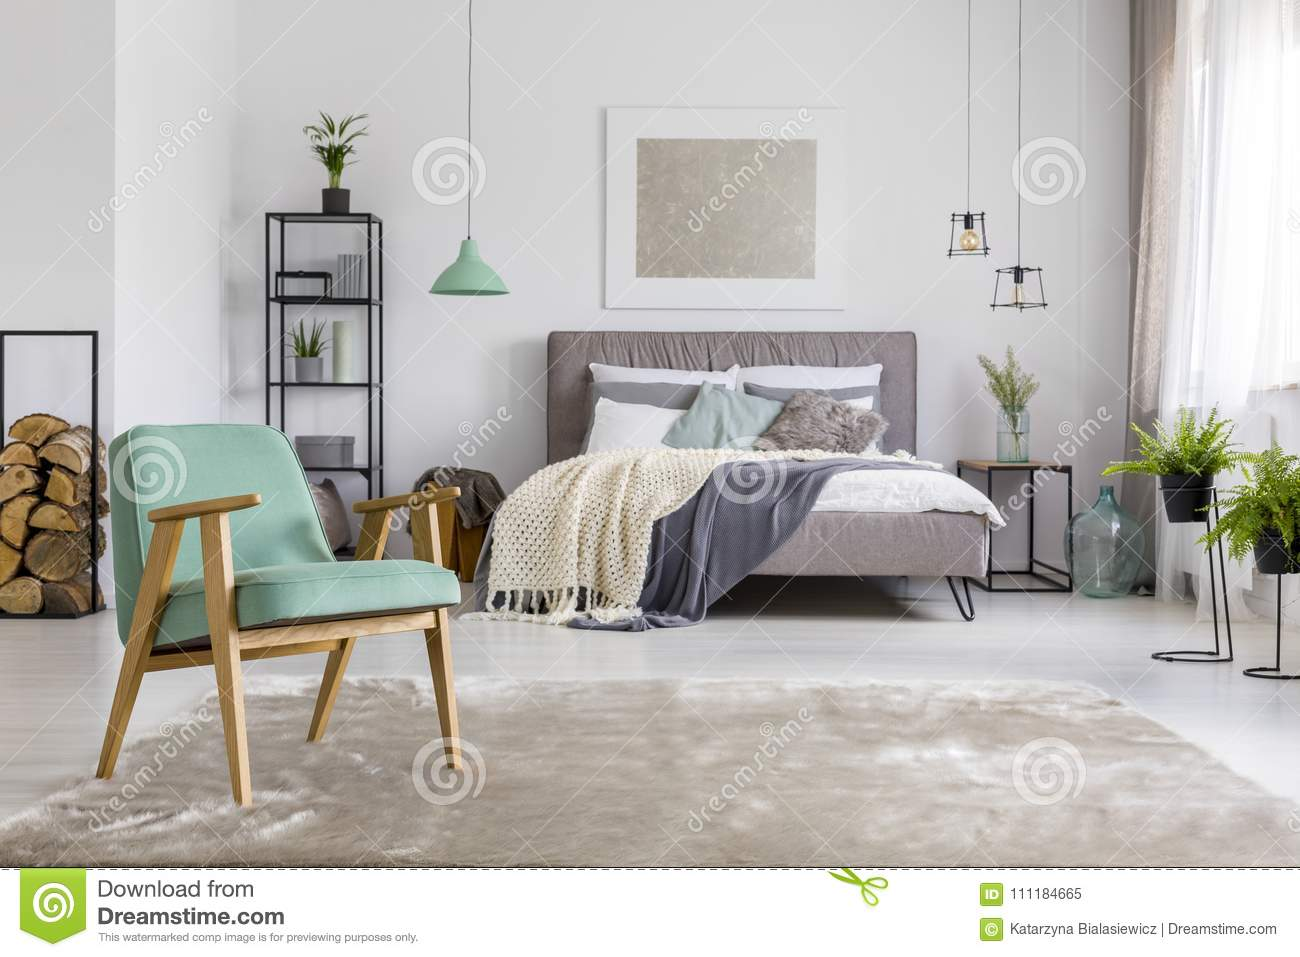 spacious bedroom armchair white spacious bedroom interior mint armchair standing rug double bed